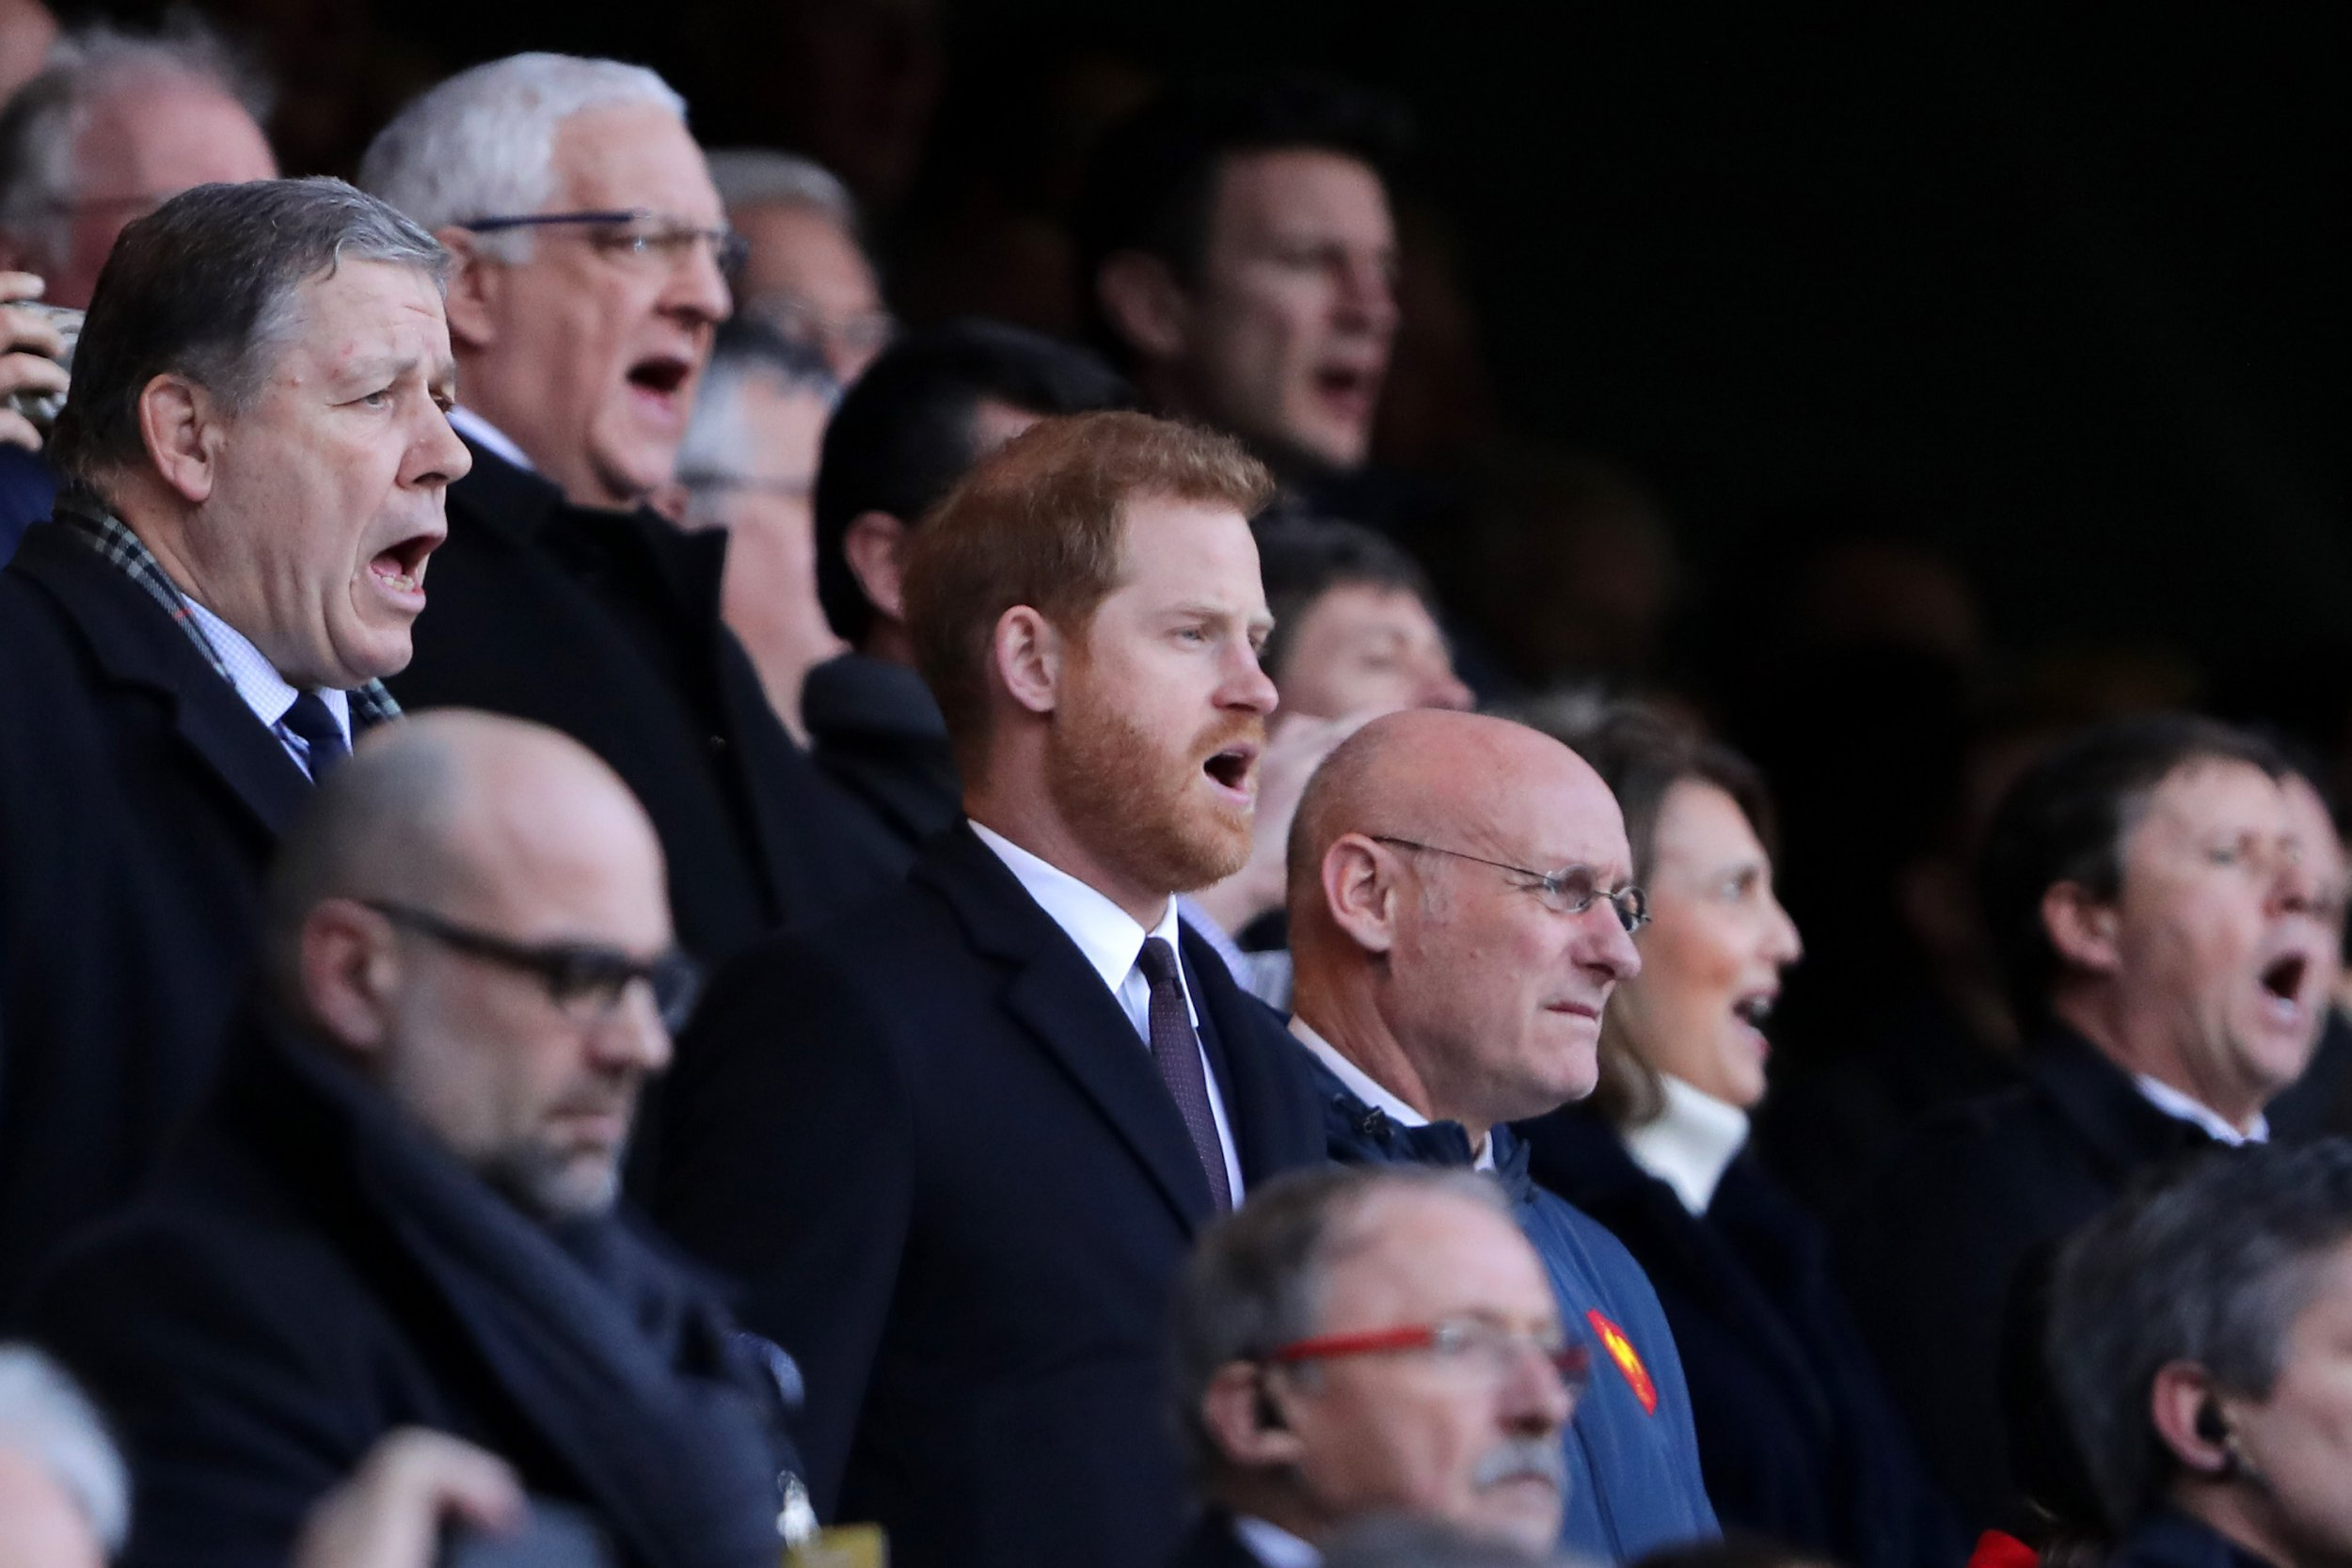 LONDON, ENGLAND - FEBRUARY 10: Prince Harry looks on prior to the Guinness Six Nations match between England and France at Twickenham Stadium on February 10, 2019 in London, England. (Photo by Richard Heathcote/Getty Images)